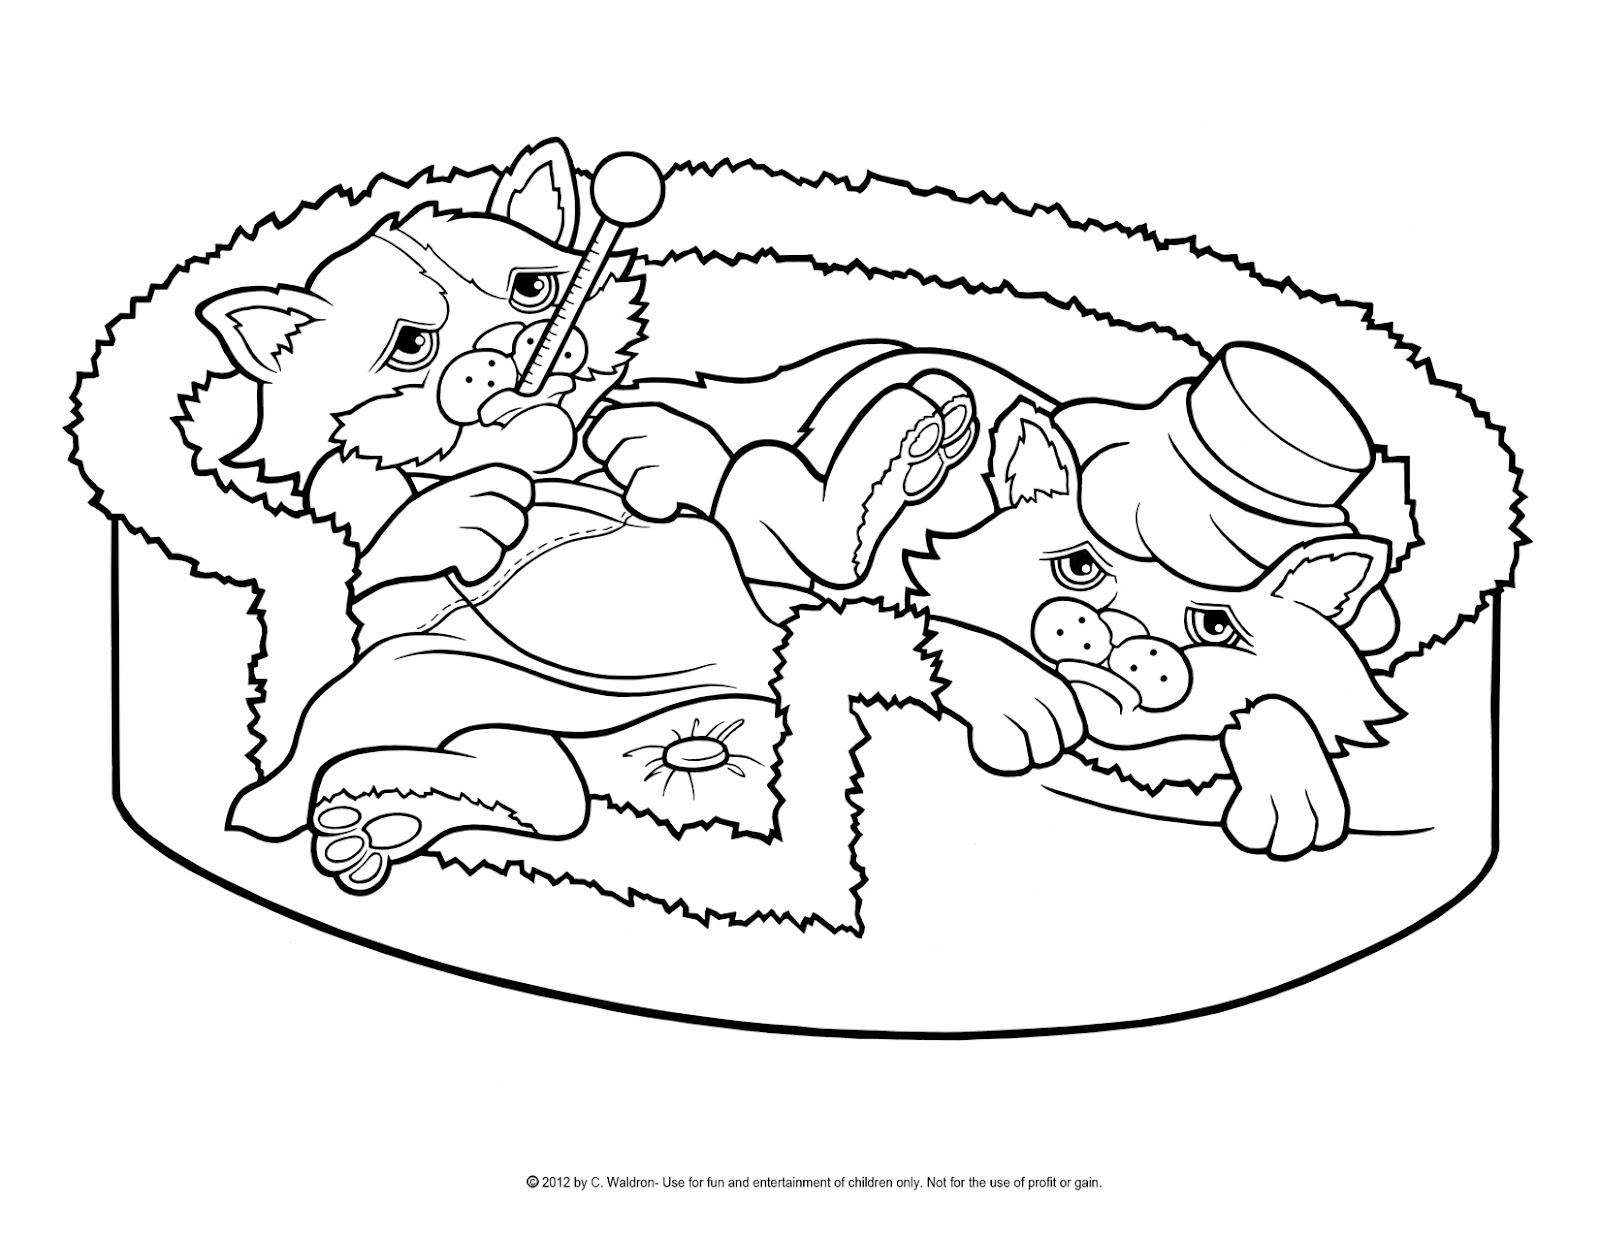 99 ideas sick coloring pages on emergingartspdx com